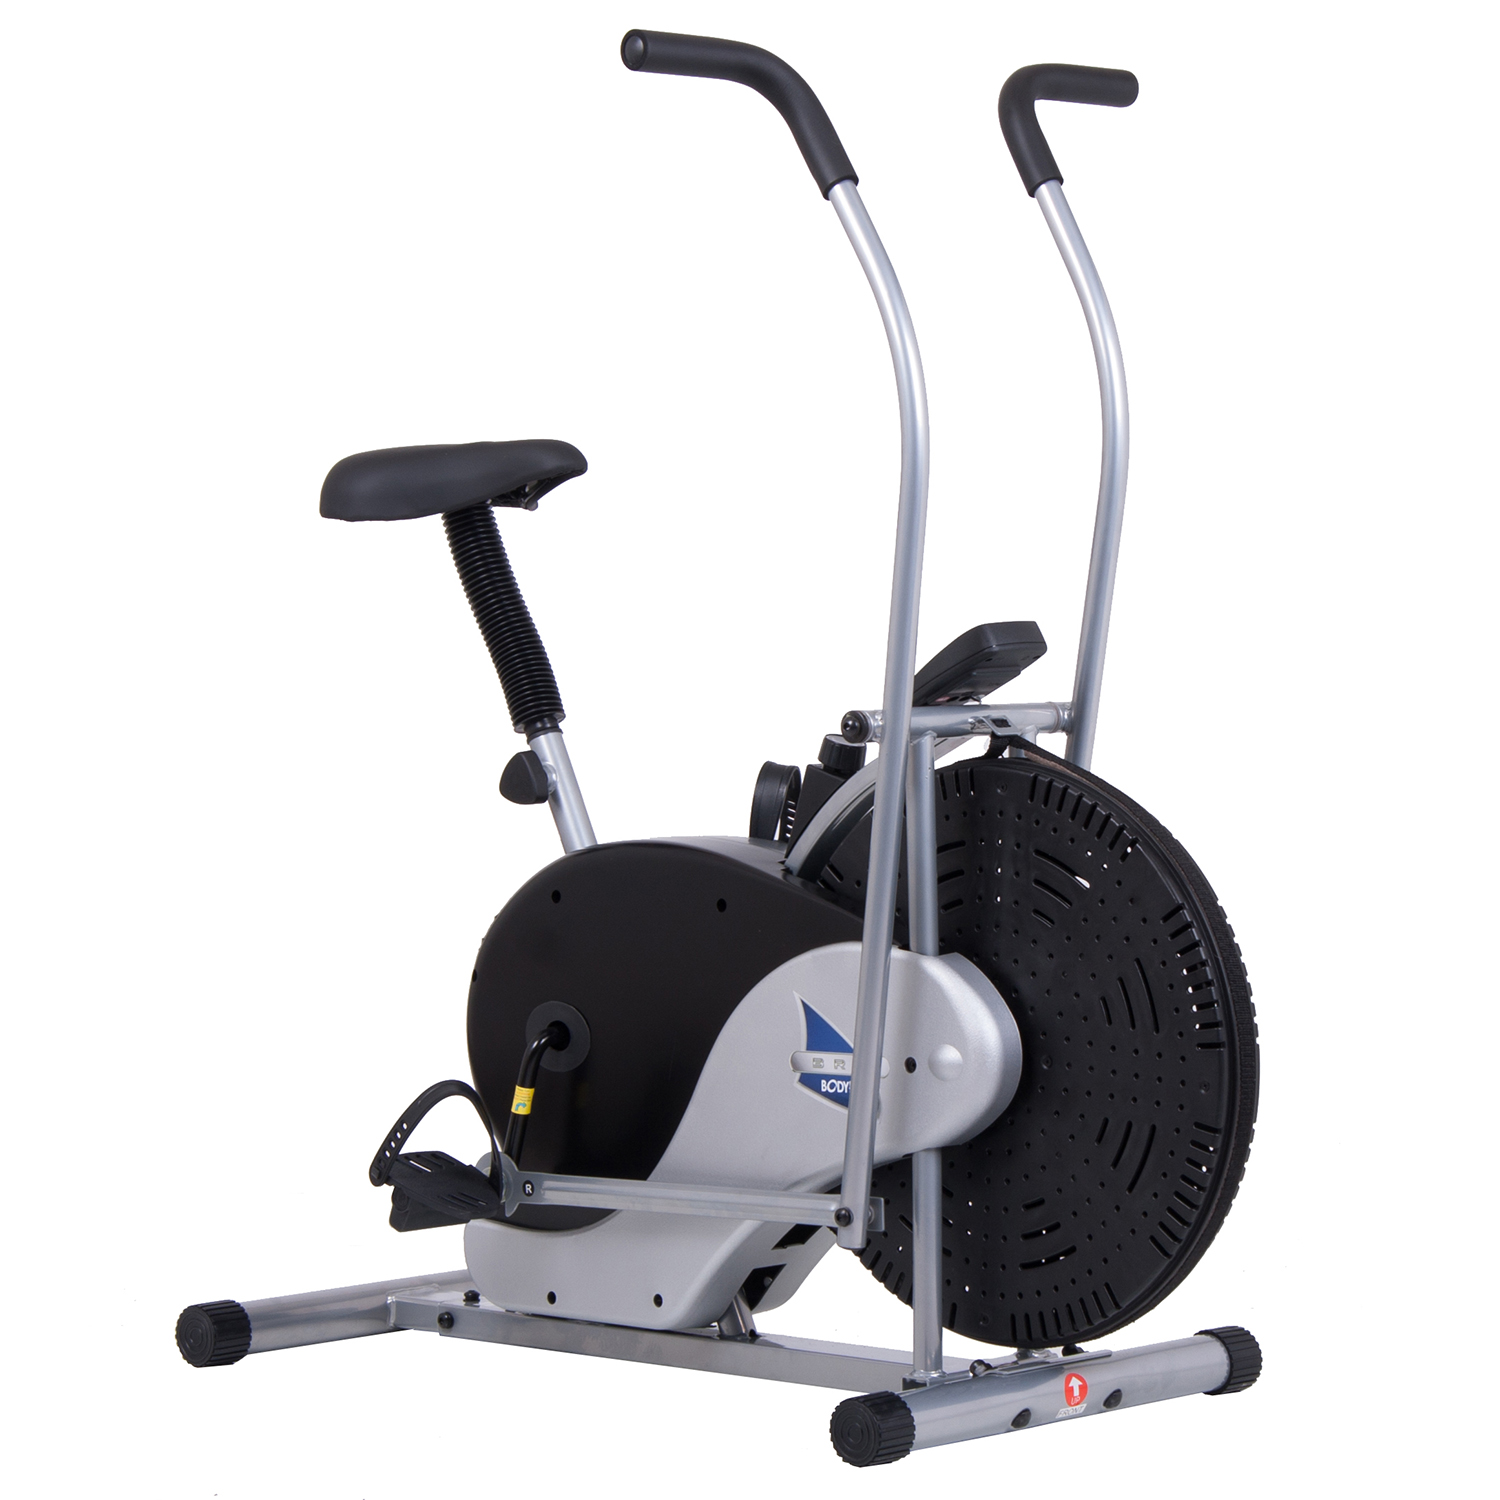 Body Rider BRF700 Upright Fan Bike